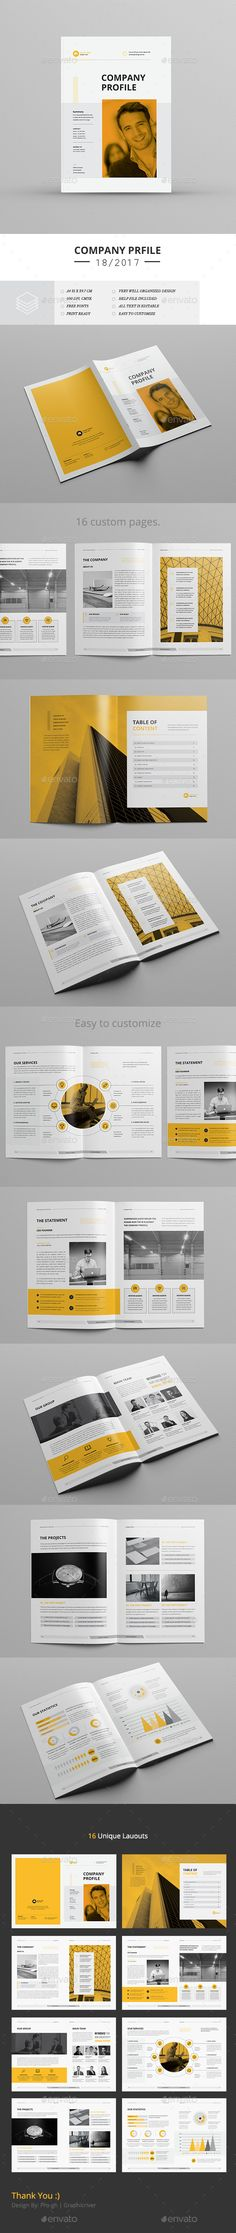 Corporate Business Brochure — InDesign INDD #identity #creative • Download ➝ https://graphicriver.net/item/corporate-business-brochure/19603057?ref=pxcr